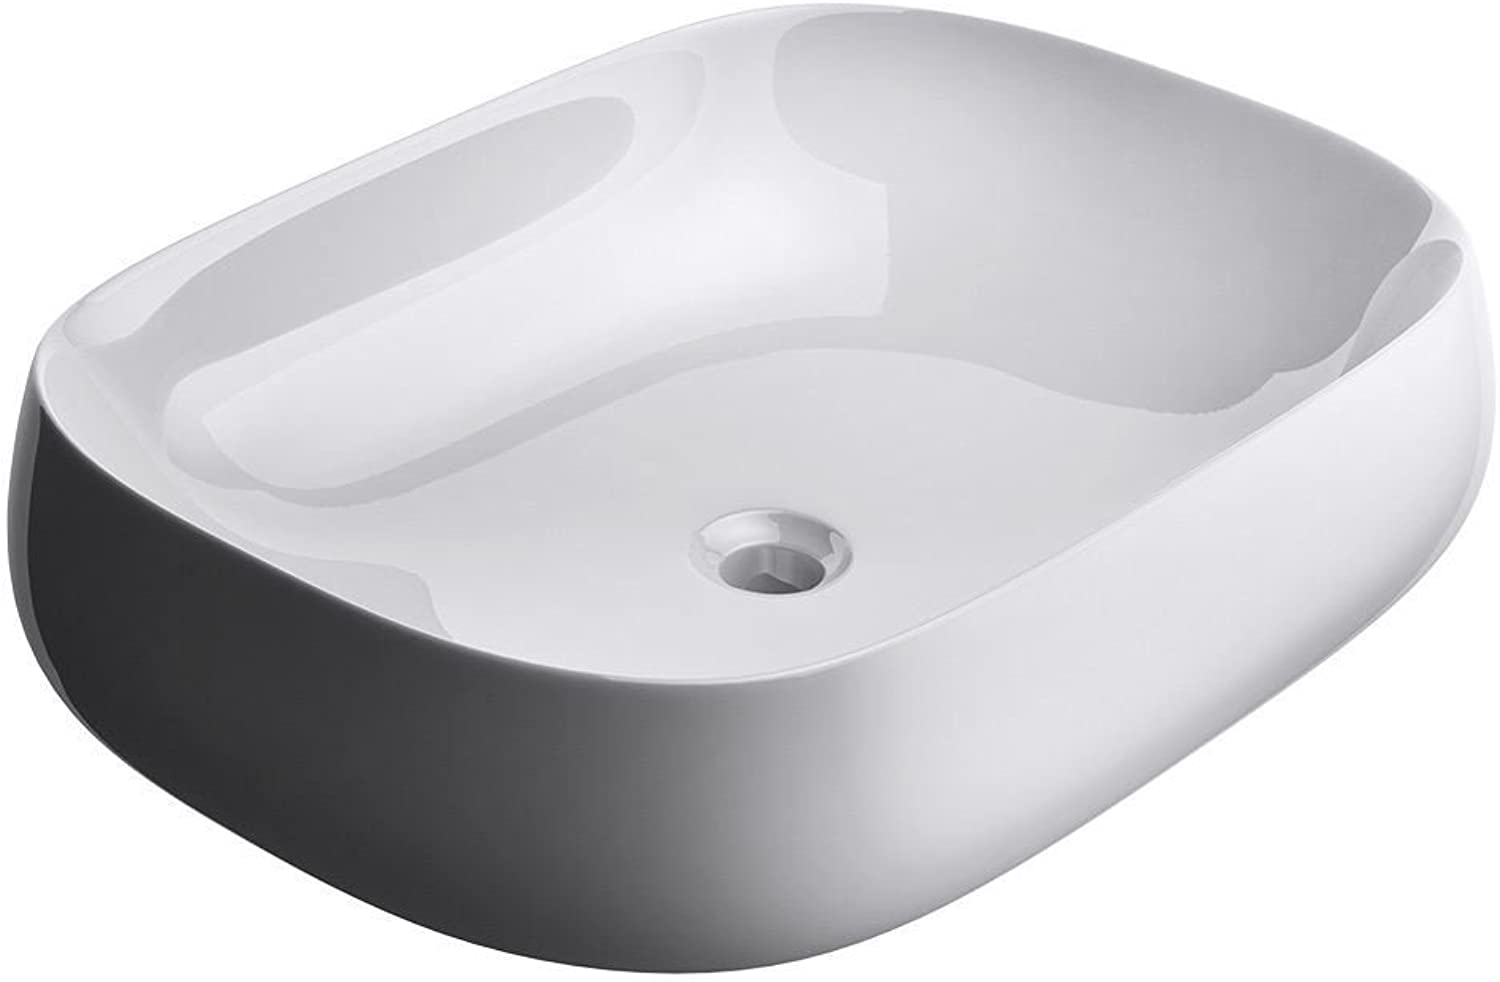 Durovin Bathrooms Ceramic Wash Basin   Counter Top Mounted Vessel   Square Washing Bowl Curved Wall